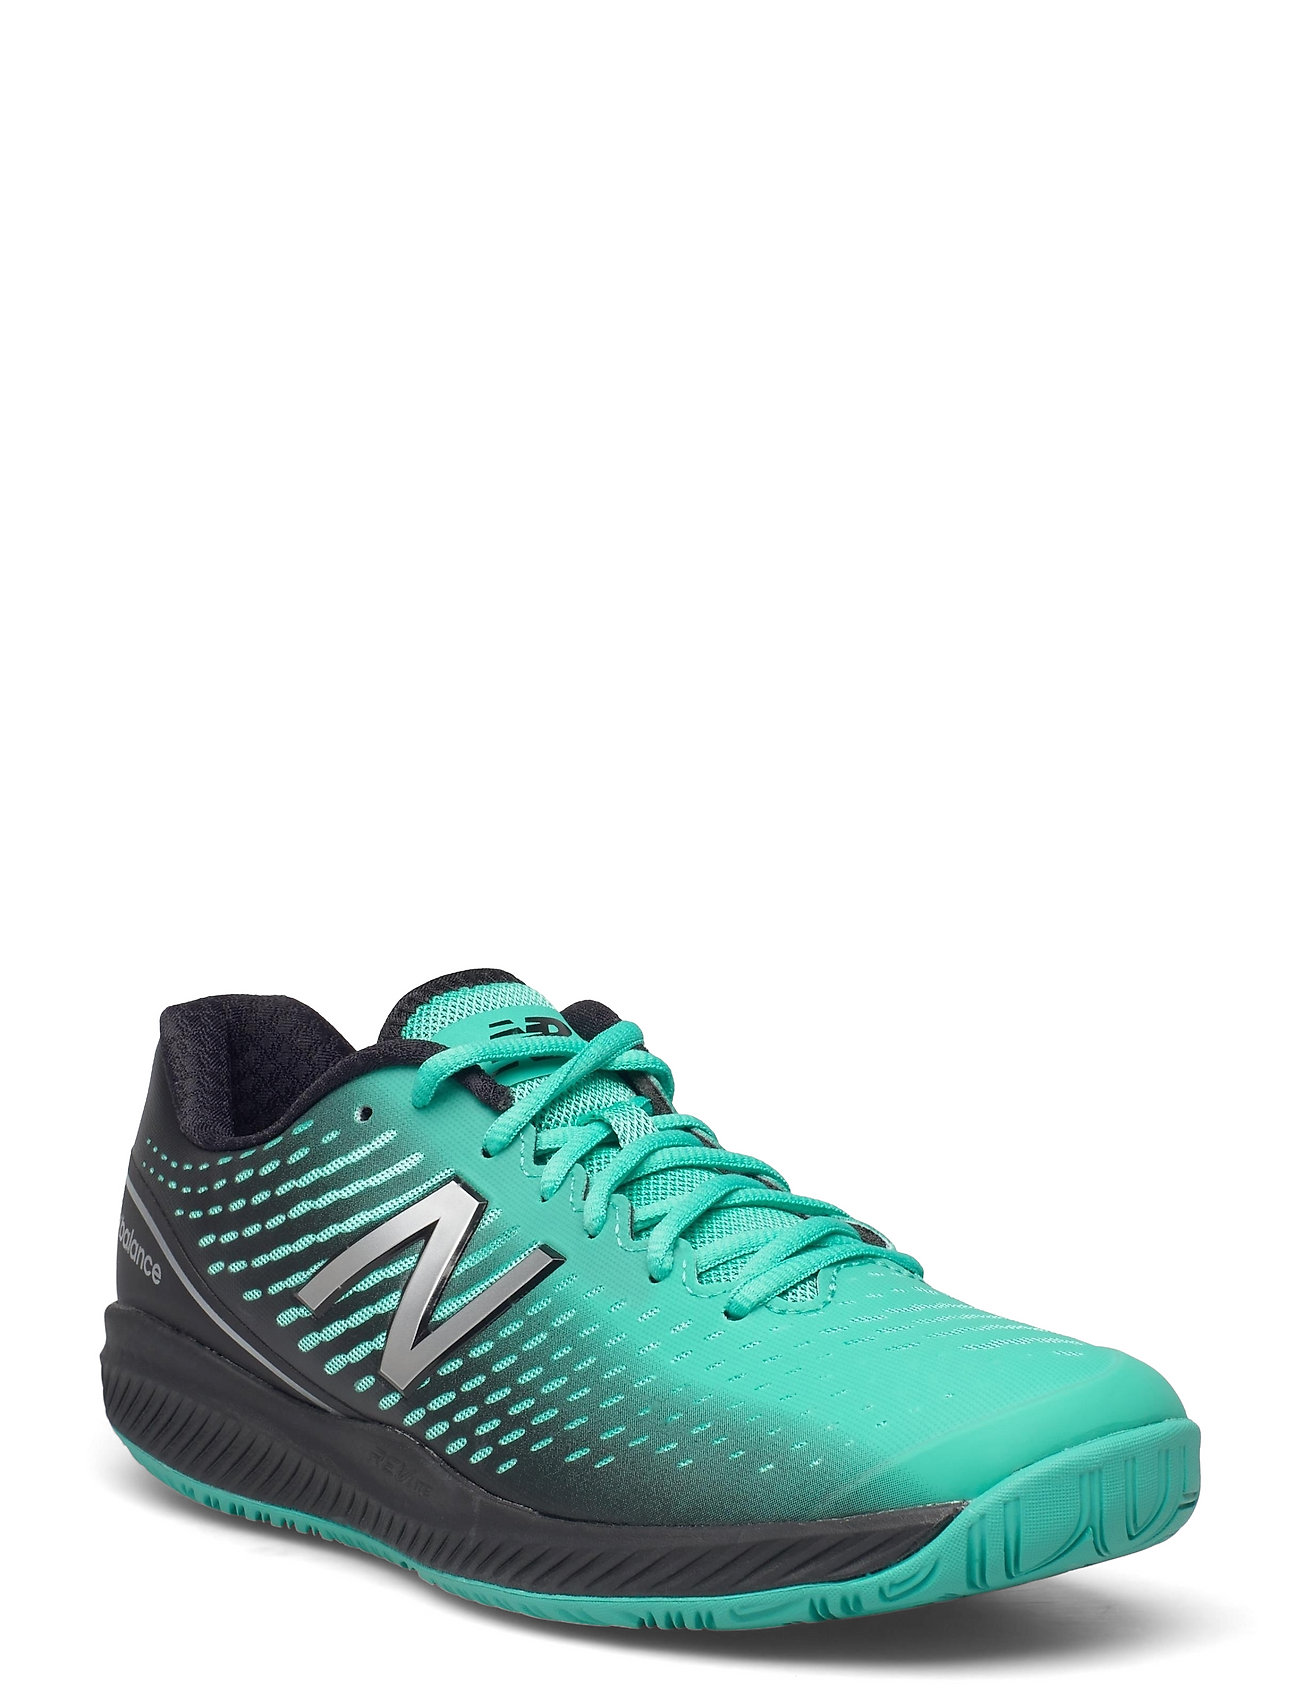 Wch796r2 Shoes Sport Shoes Racketsports Shoes Blå New Balance